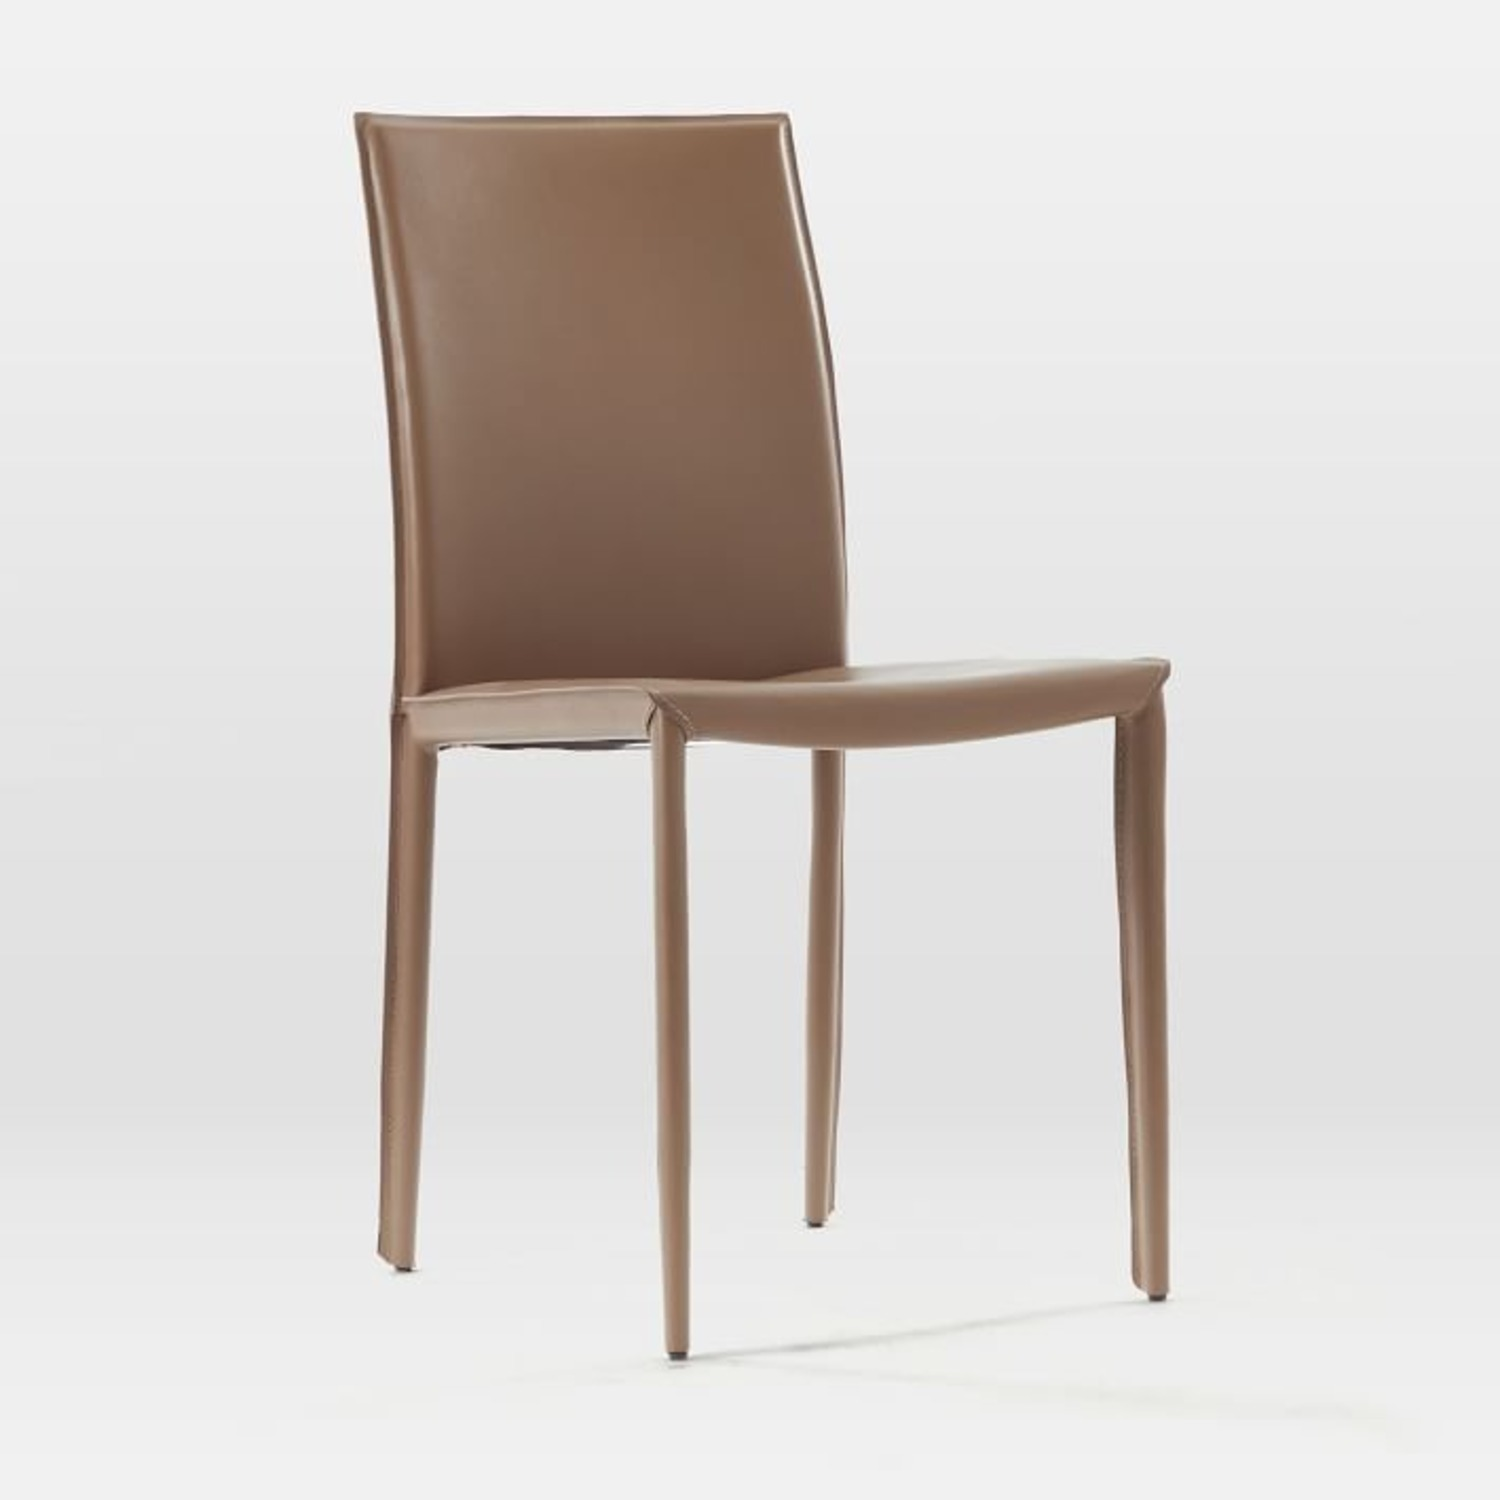 West Elm Lex Dining Chair - image-1